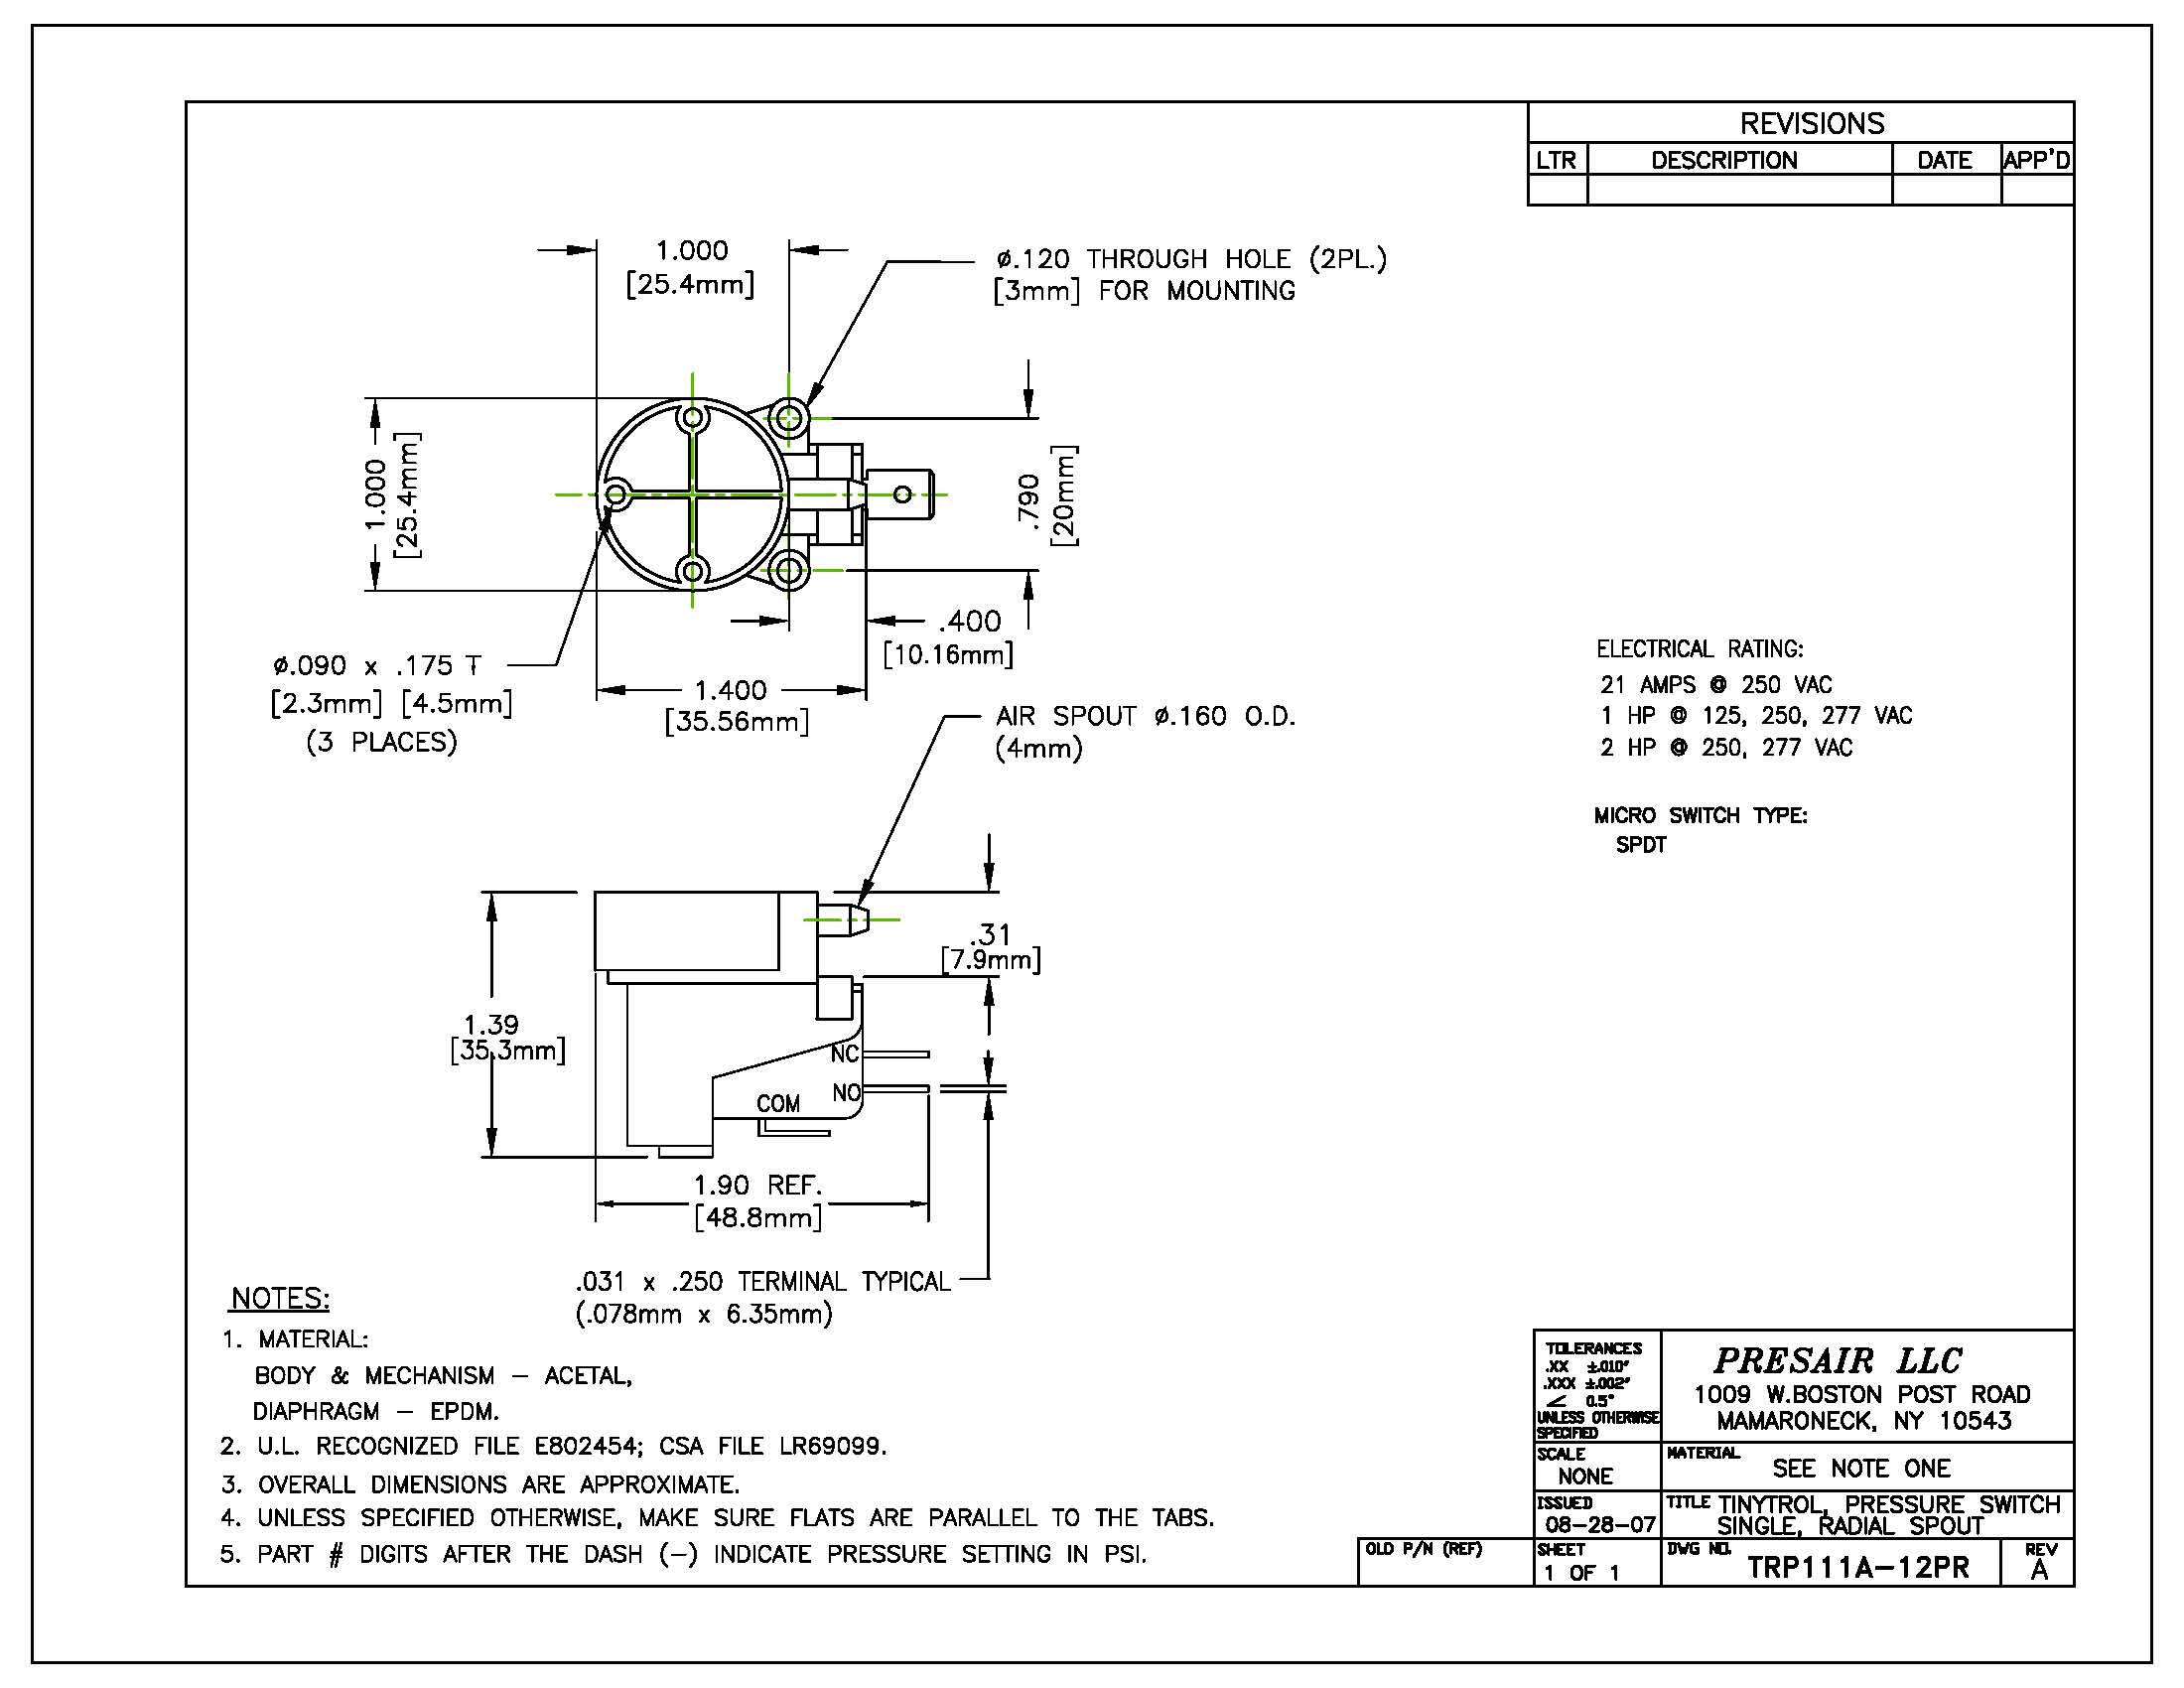 Tinytrol Engineering Drawing, Presair, Pressure Switch Diagram, TRP111A